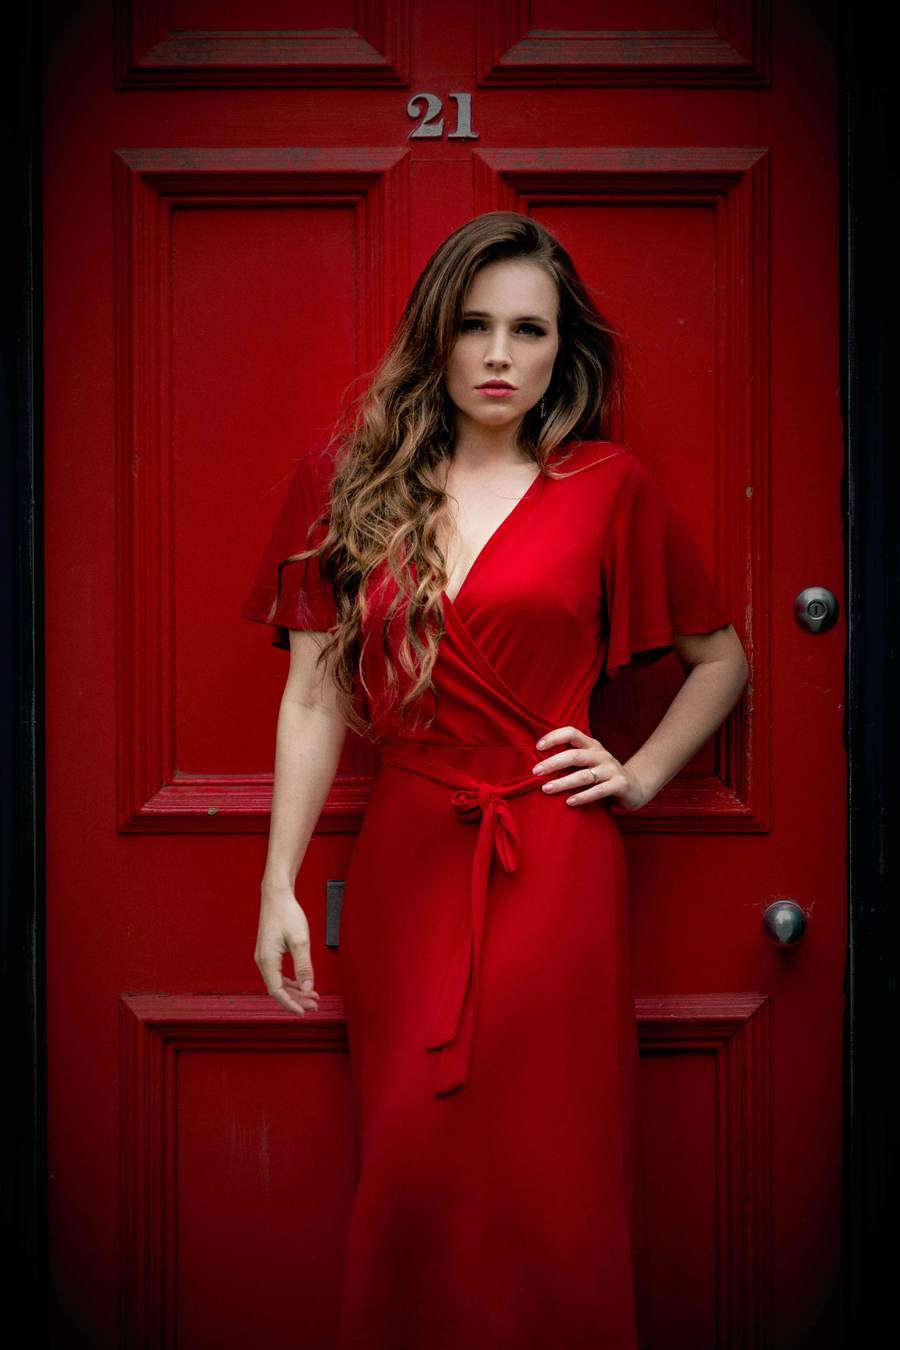 Red door  / Photography by Grewy, Model BeccyWinter, Post processing by Grewy / Uploaded 29th May 2019 @ 11:16 PM